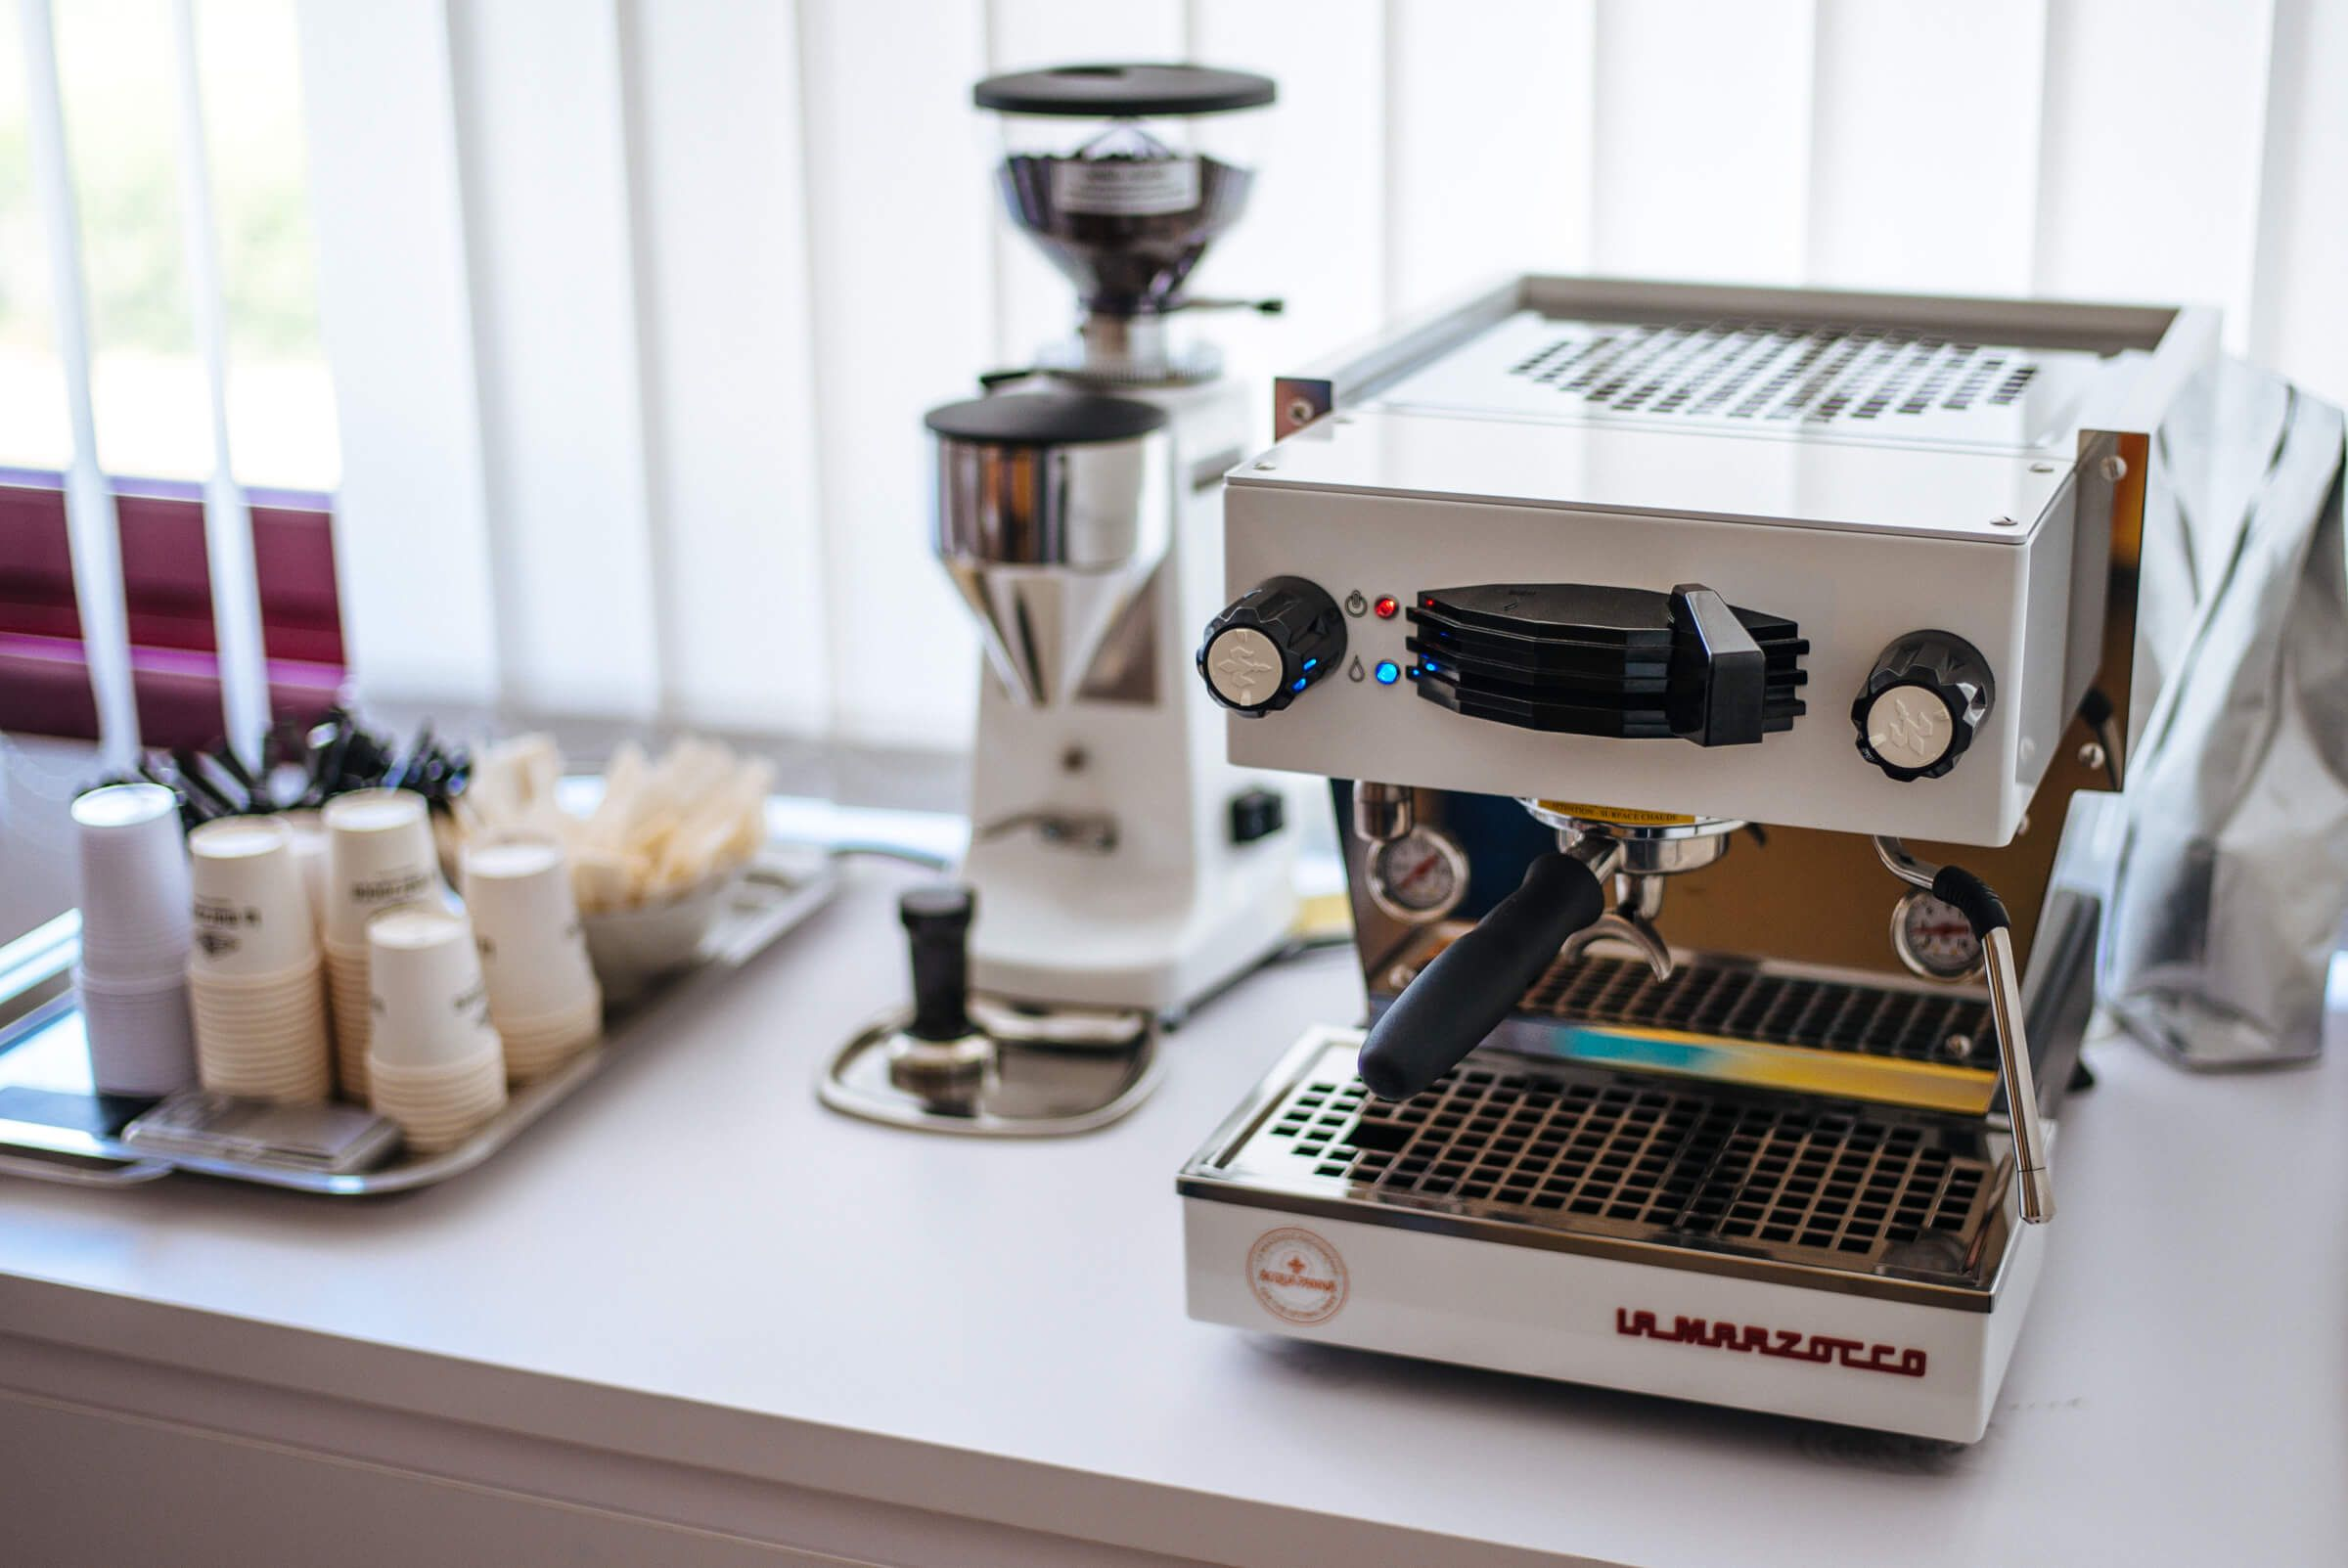 La Marzocco Home Linea Mini Espresso Machine From La Marzocco Factory Tour In Florence The Taste Edit In 2020 Espresso Machine Espresso La Marzocco